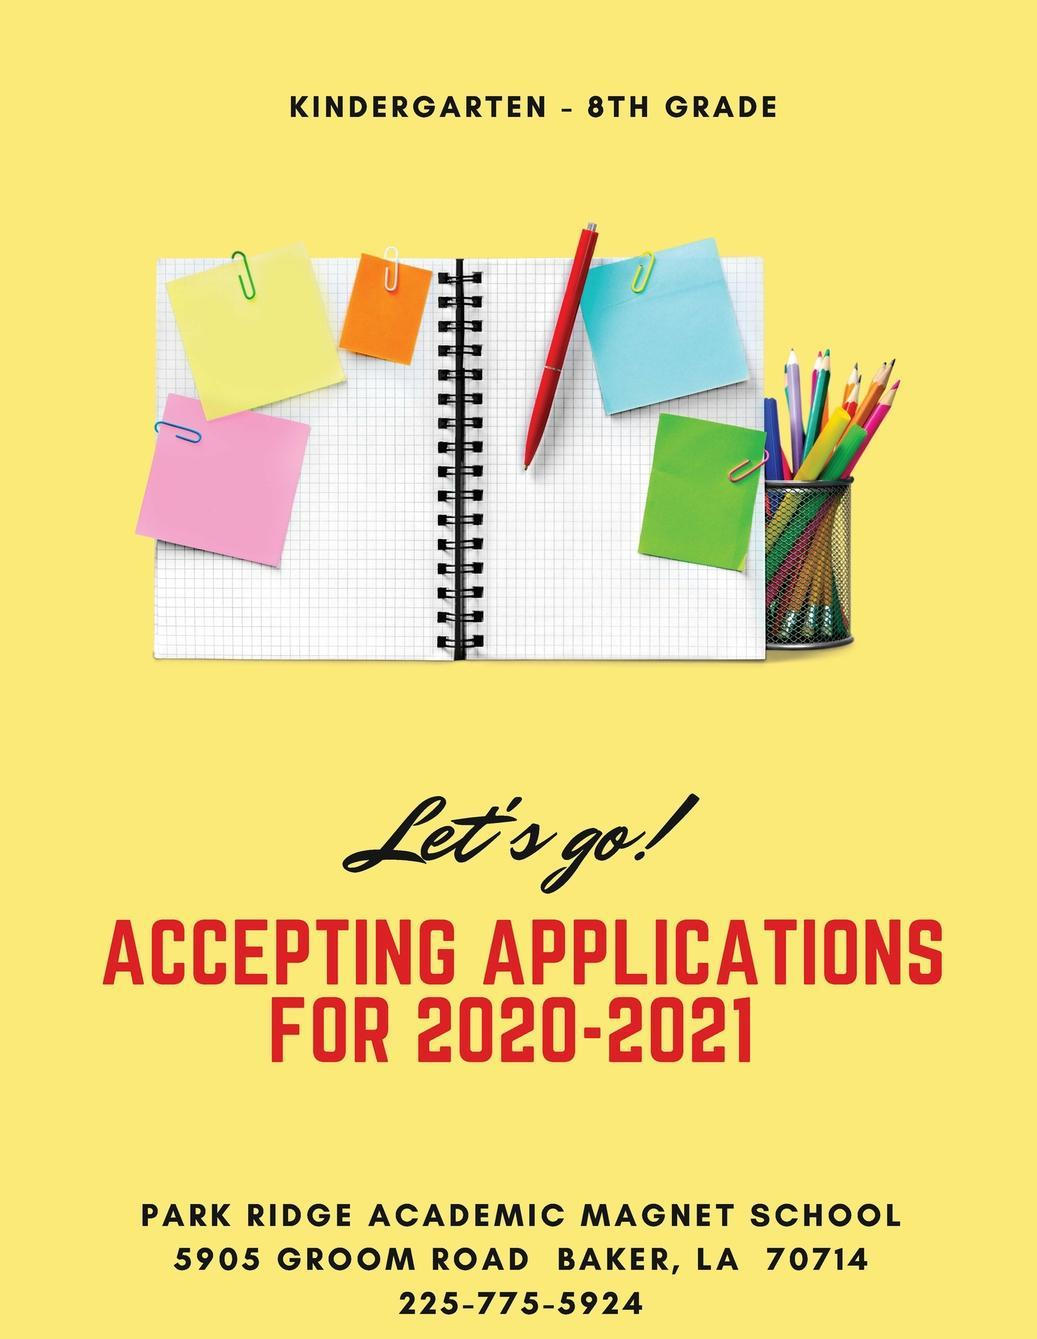 a graphic advertising that Park Ridge is accepting applications for K through 8th grade for the 2020 2021 school year